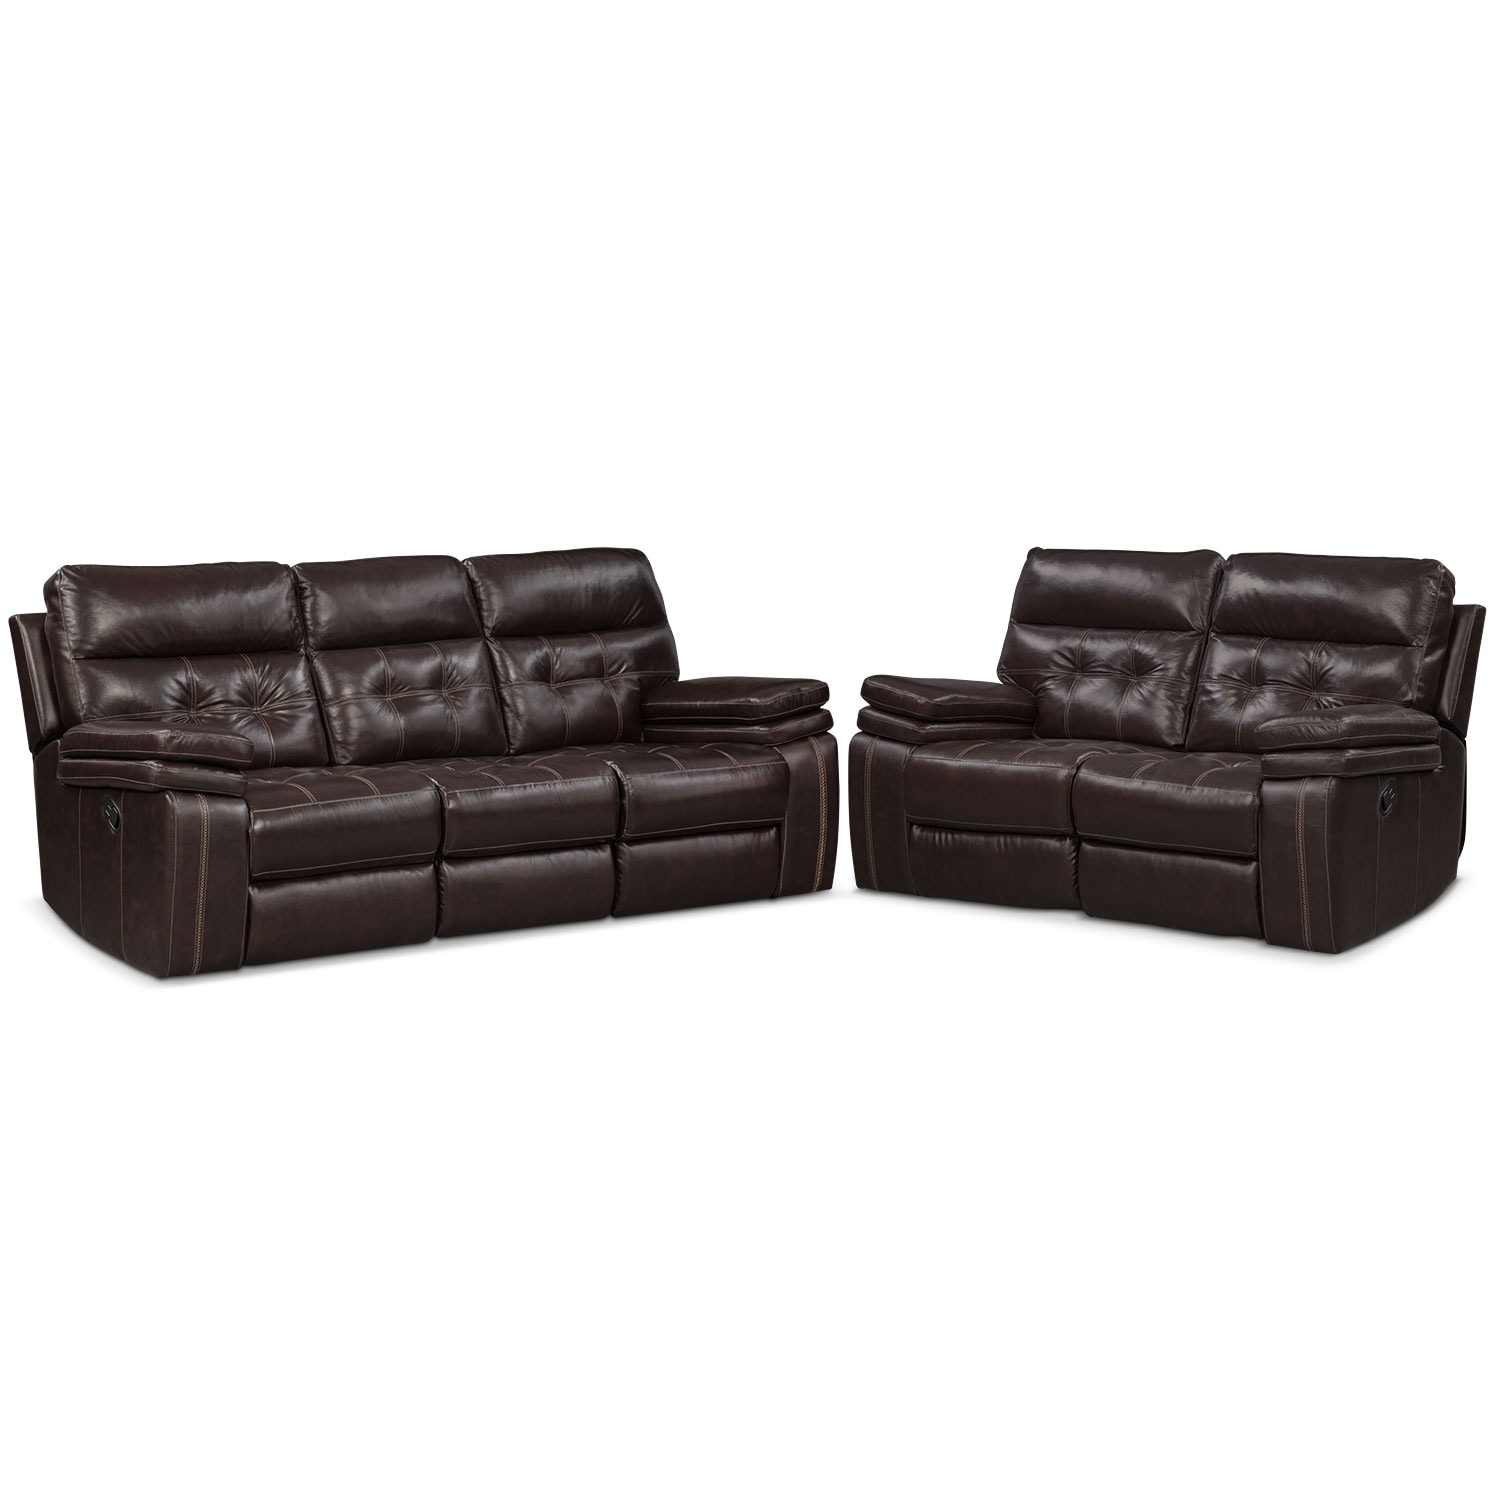 Brisco Manual Reclining Sofa and Reclining Loveseat Set - Brown